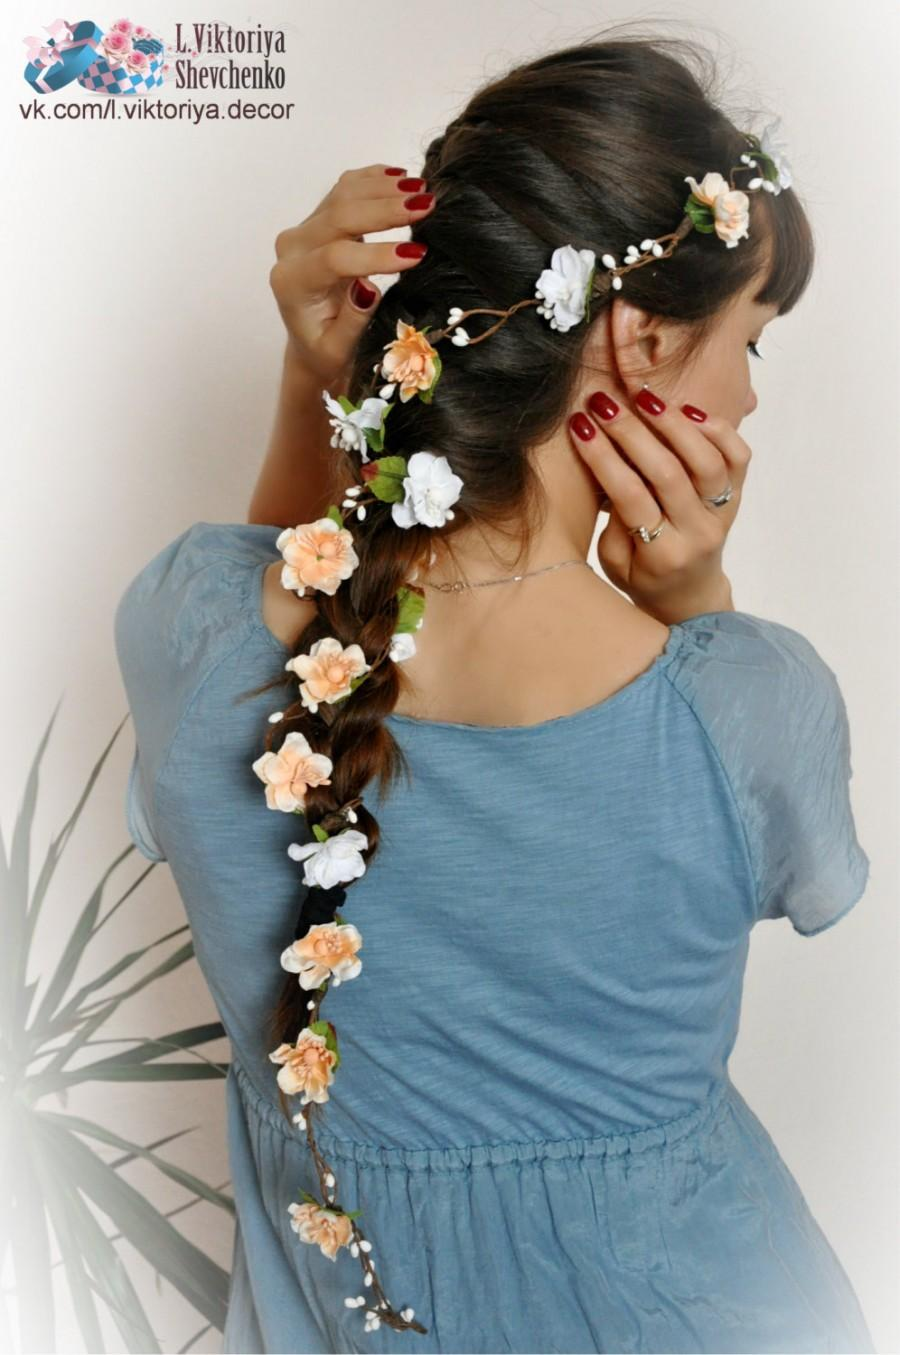 Flower hair garland bridal flower crown wedding hair flowers head flower hair garland bridal flower crown wedding hair flowers head wreath flower crown cherry blossoms white bridal wreath floral hair crown izmirmasajfo